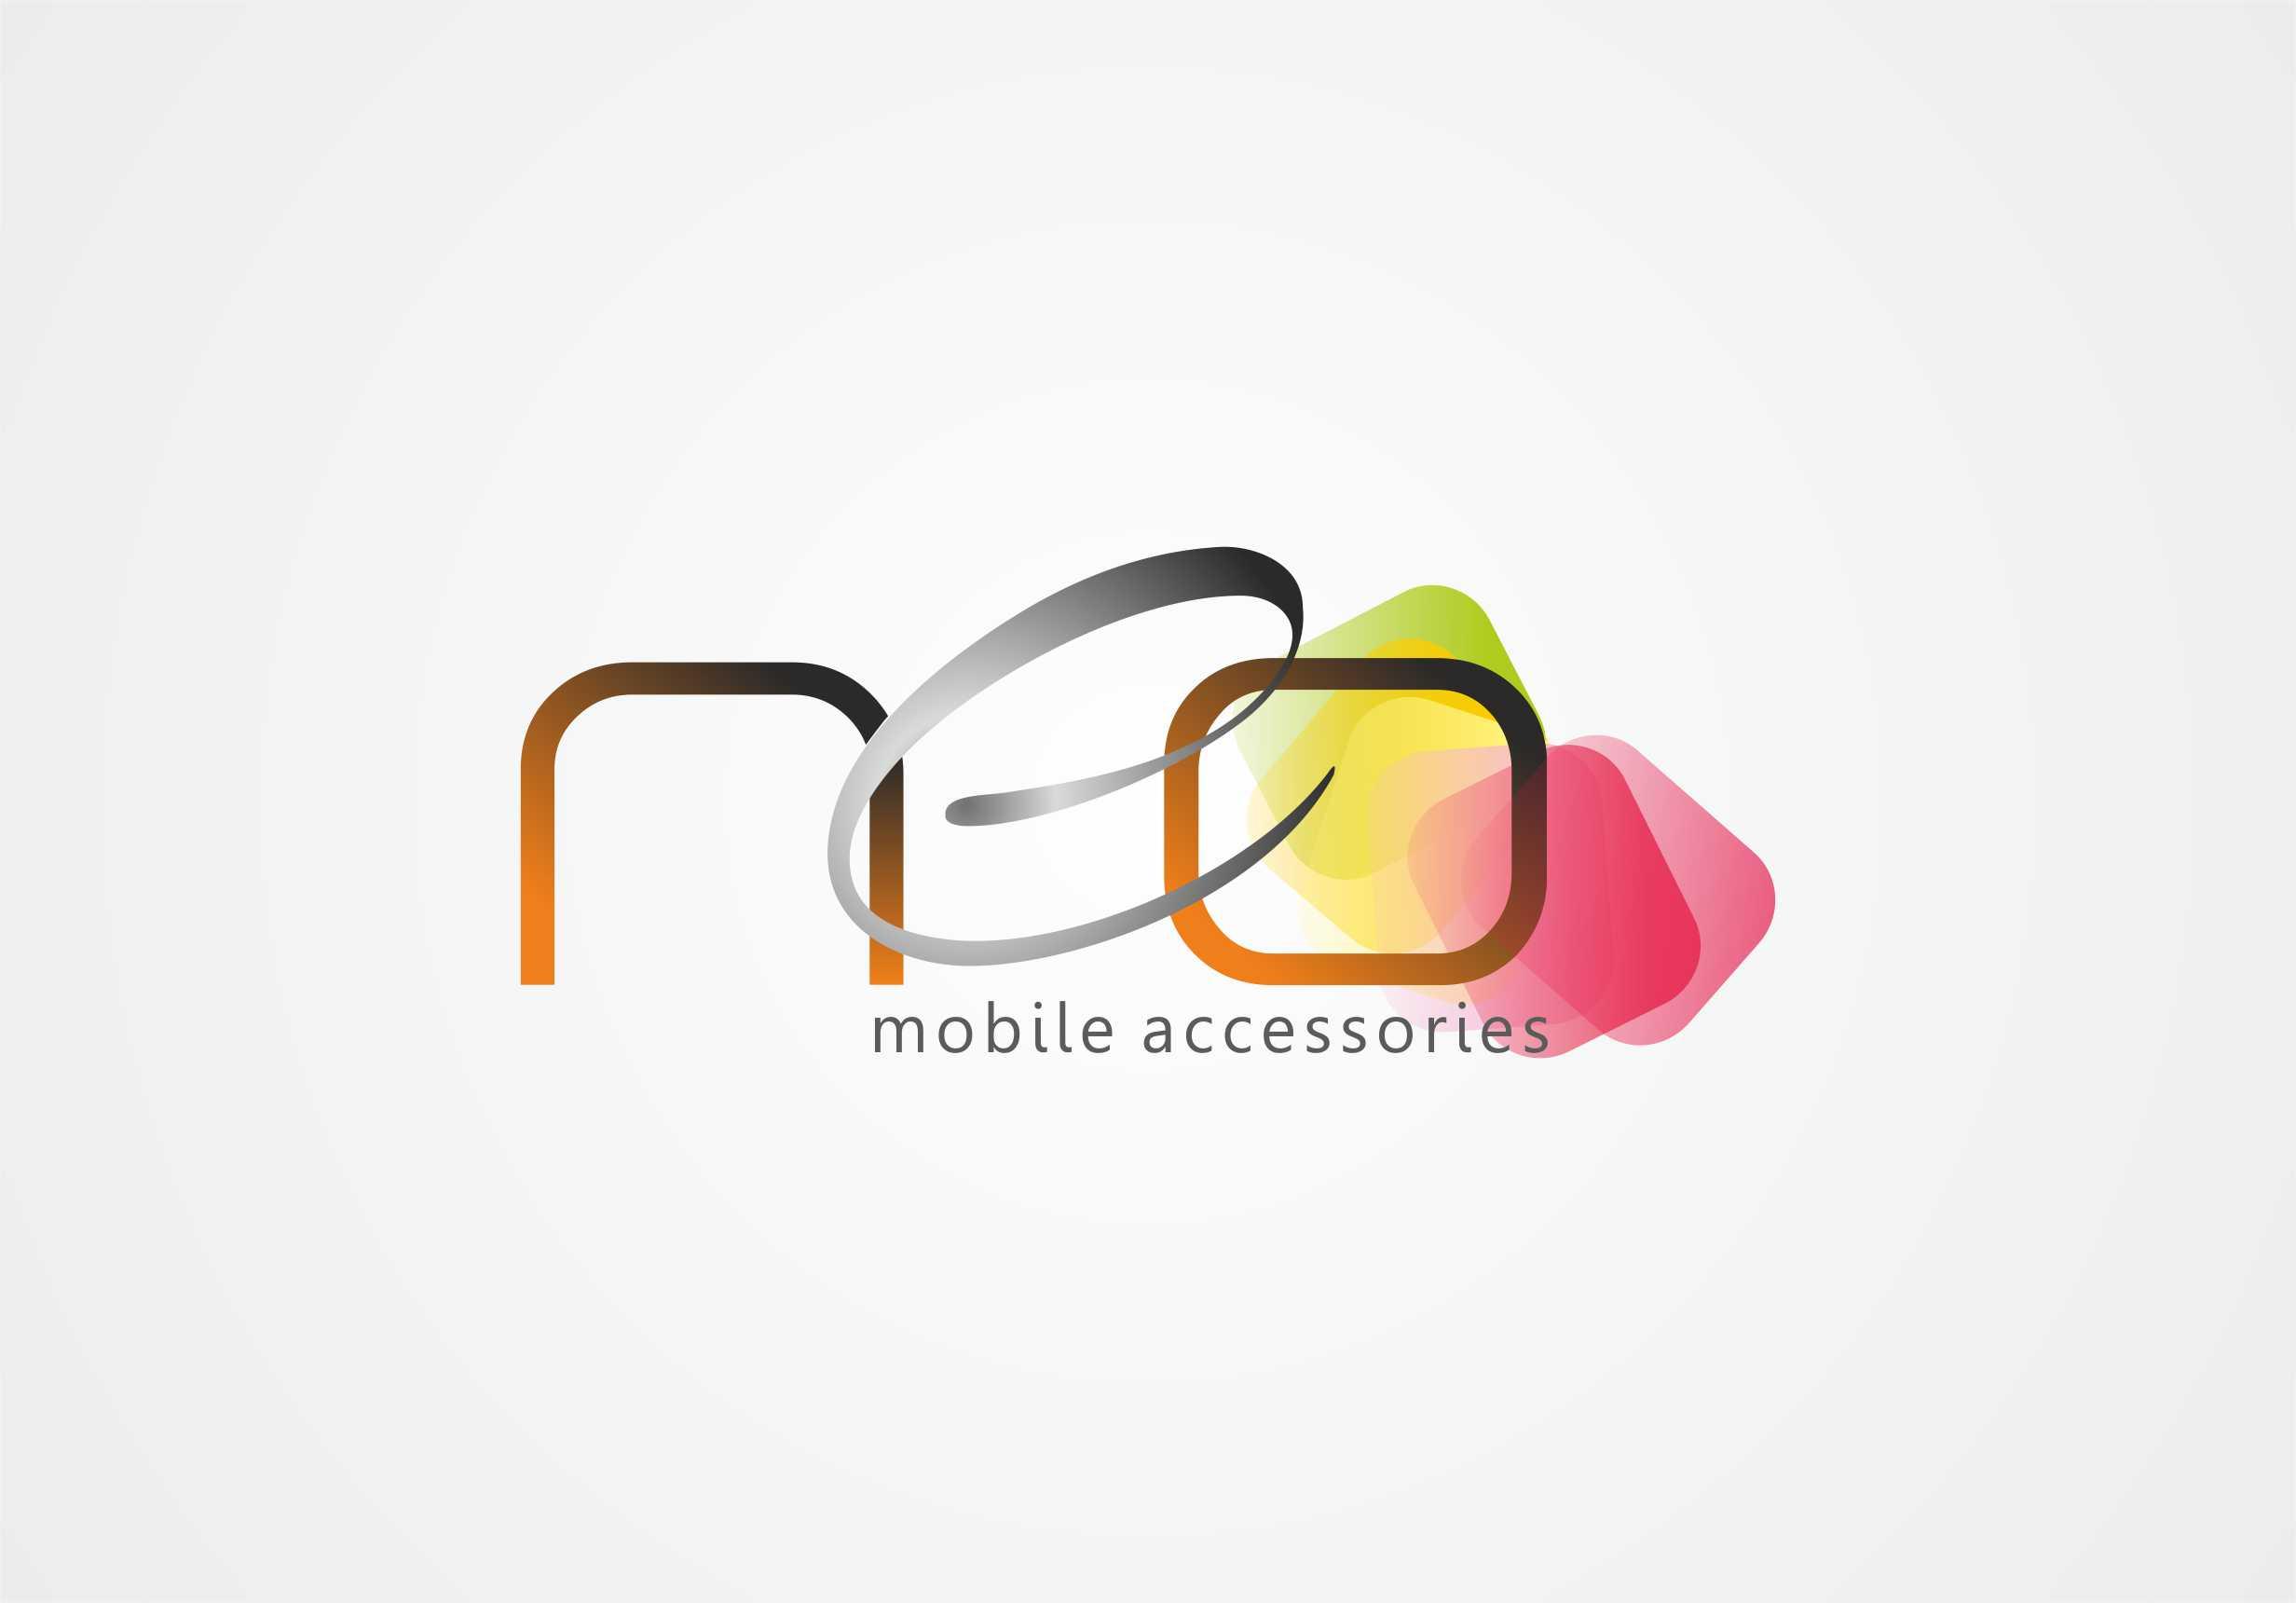 Neo Mobile accessories